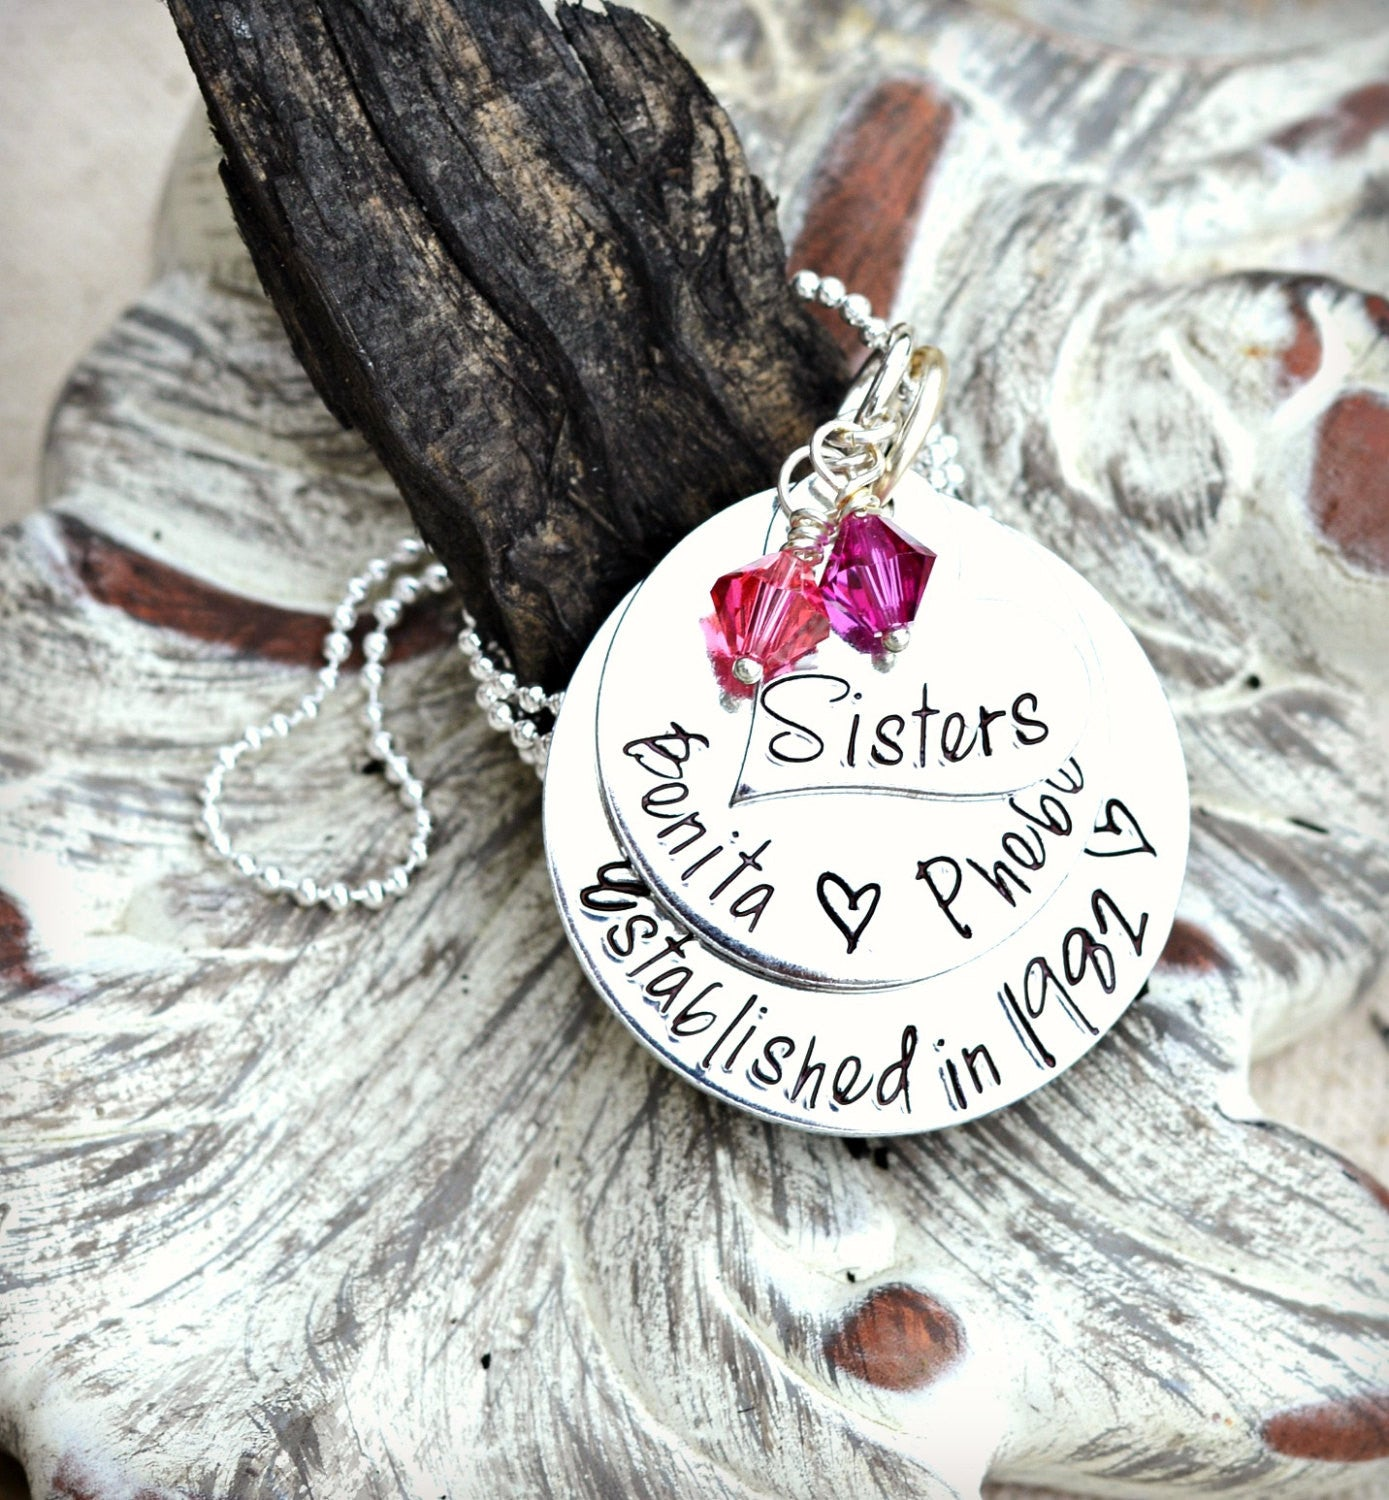 Gift ideas for Sister - Gifts for Girlfriend - DIY birthday gift ...